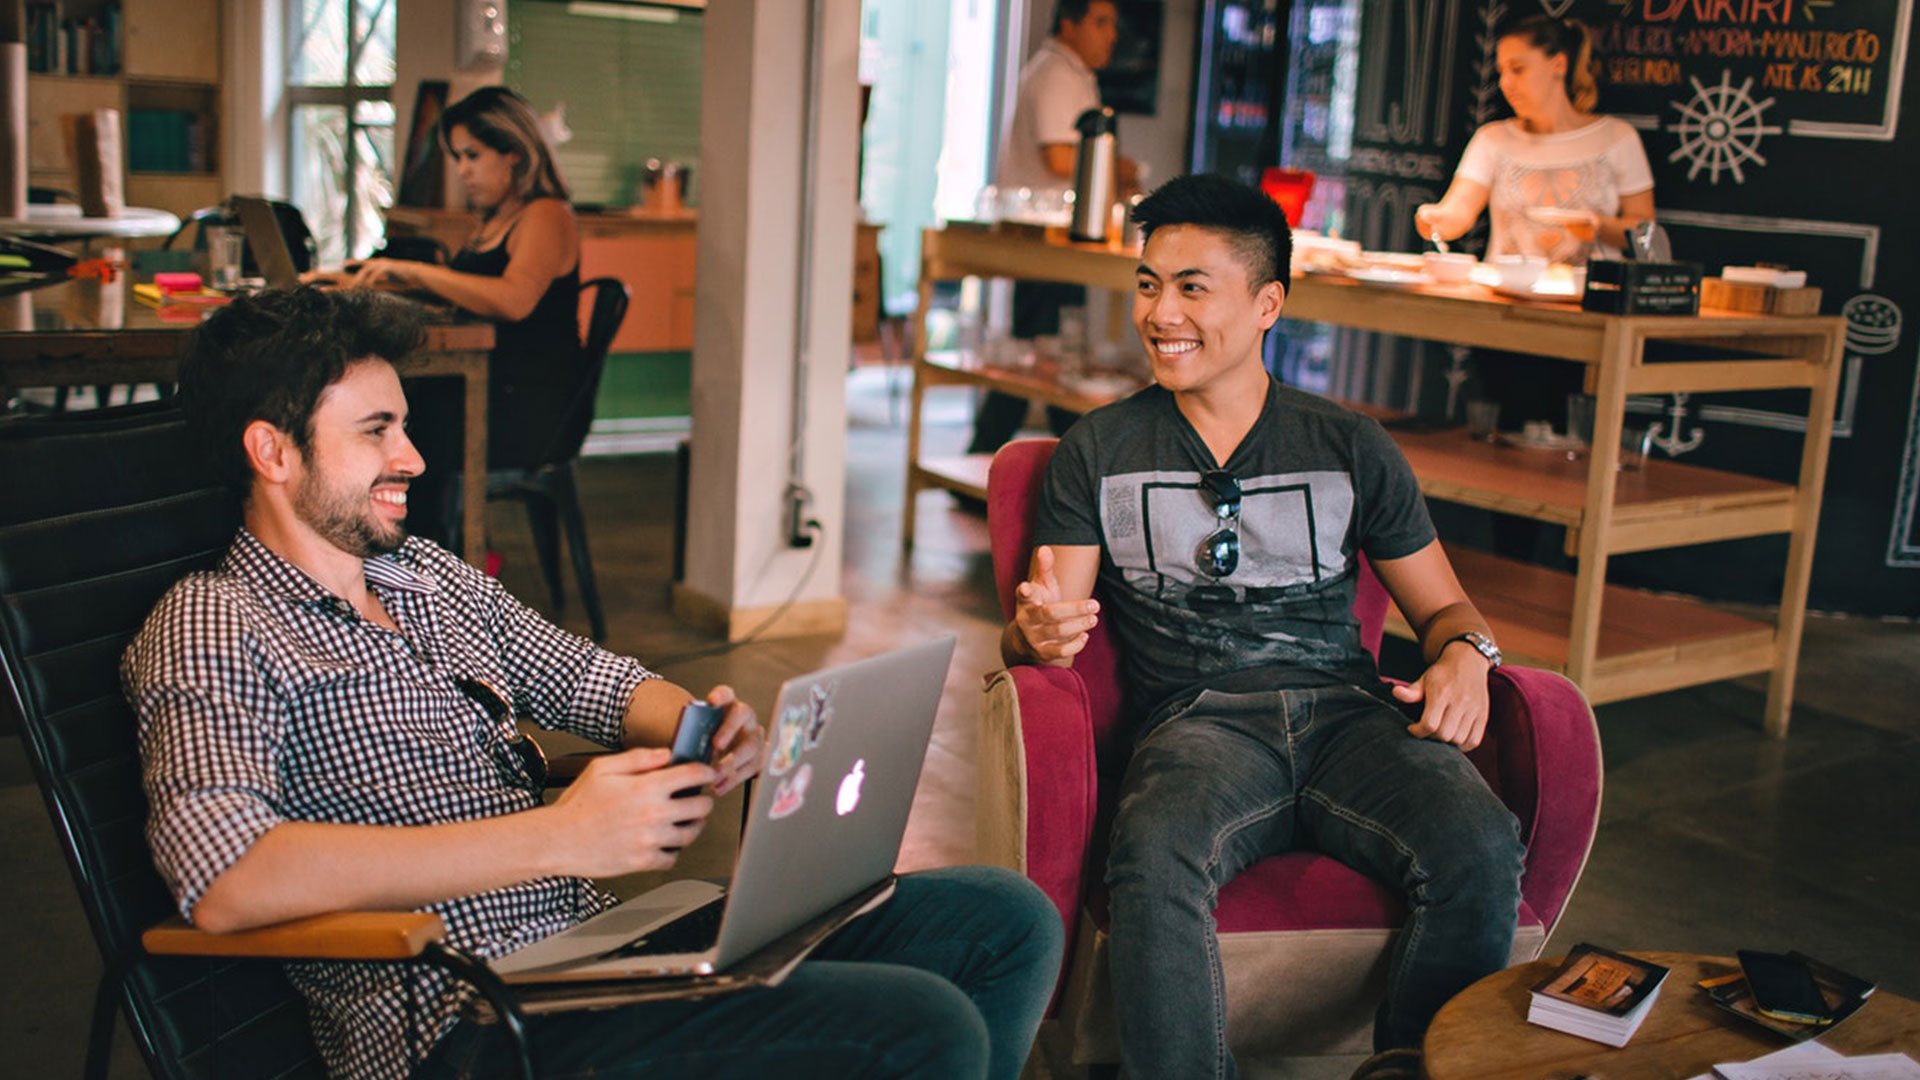 Two men in their 20s network at a coffee shop